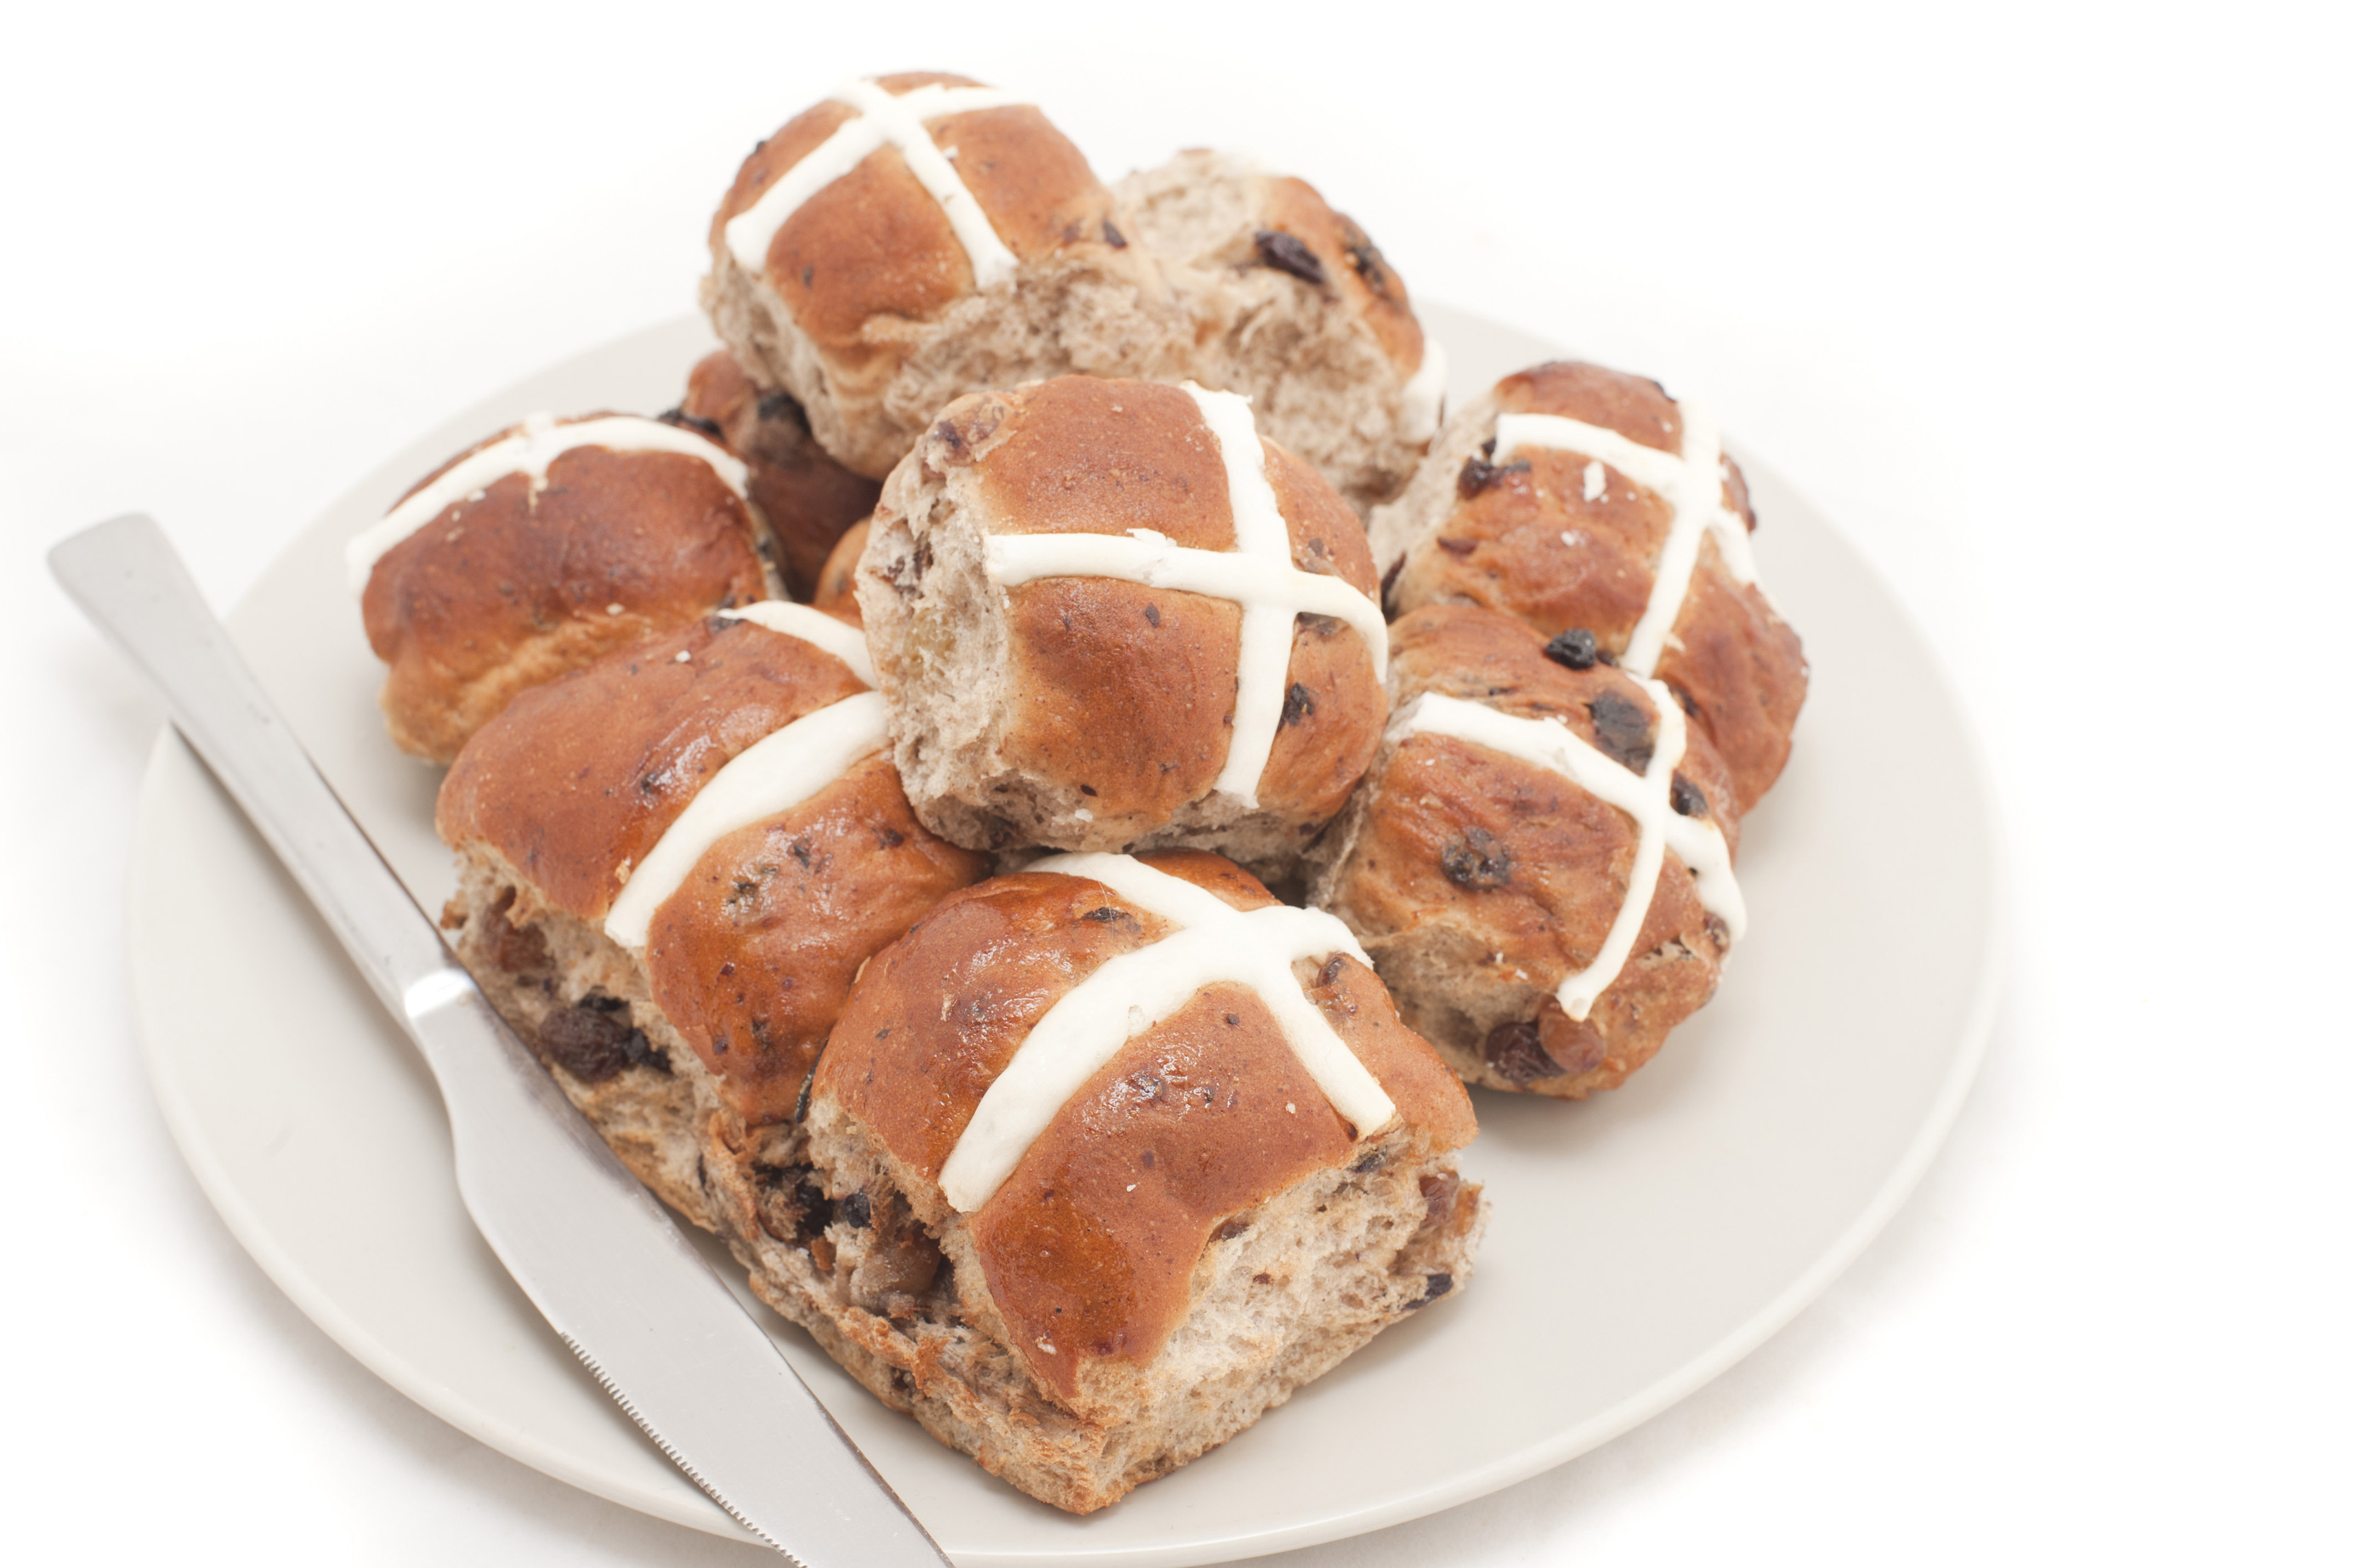 Plate of freshly baked spicy fruity Hot Cross Buns with raisins symbolic of the crucifixion of Christ at Easter